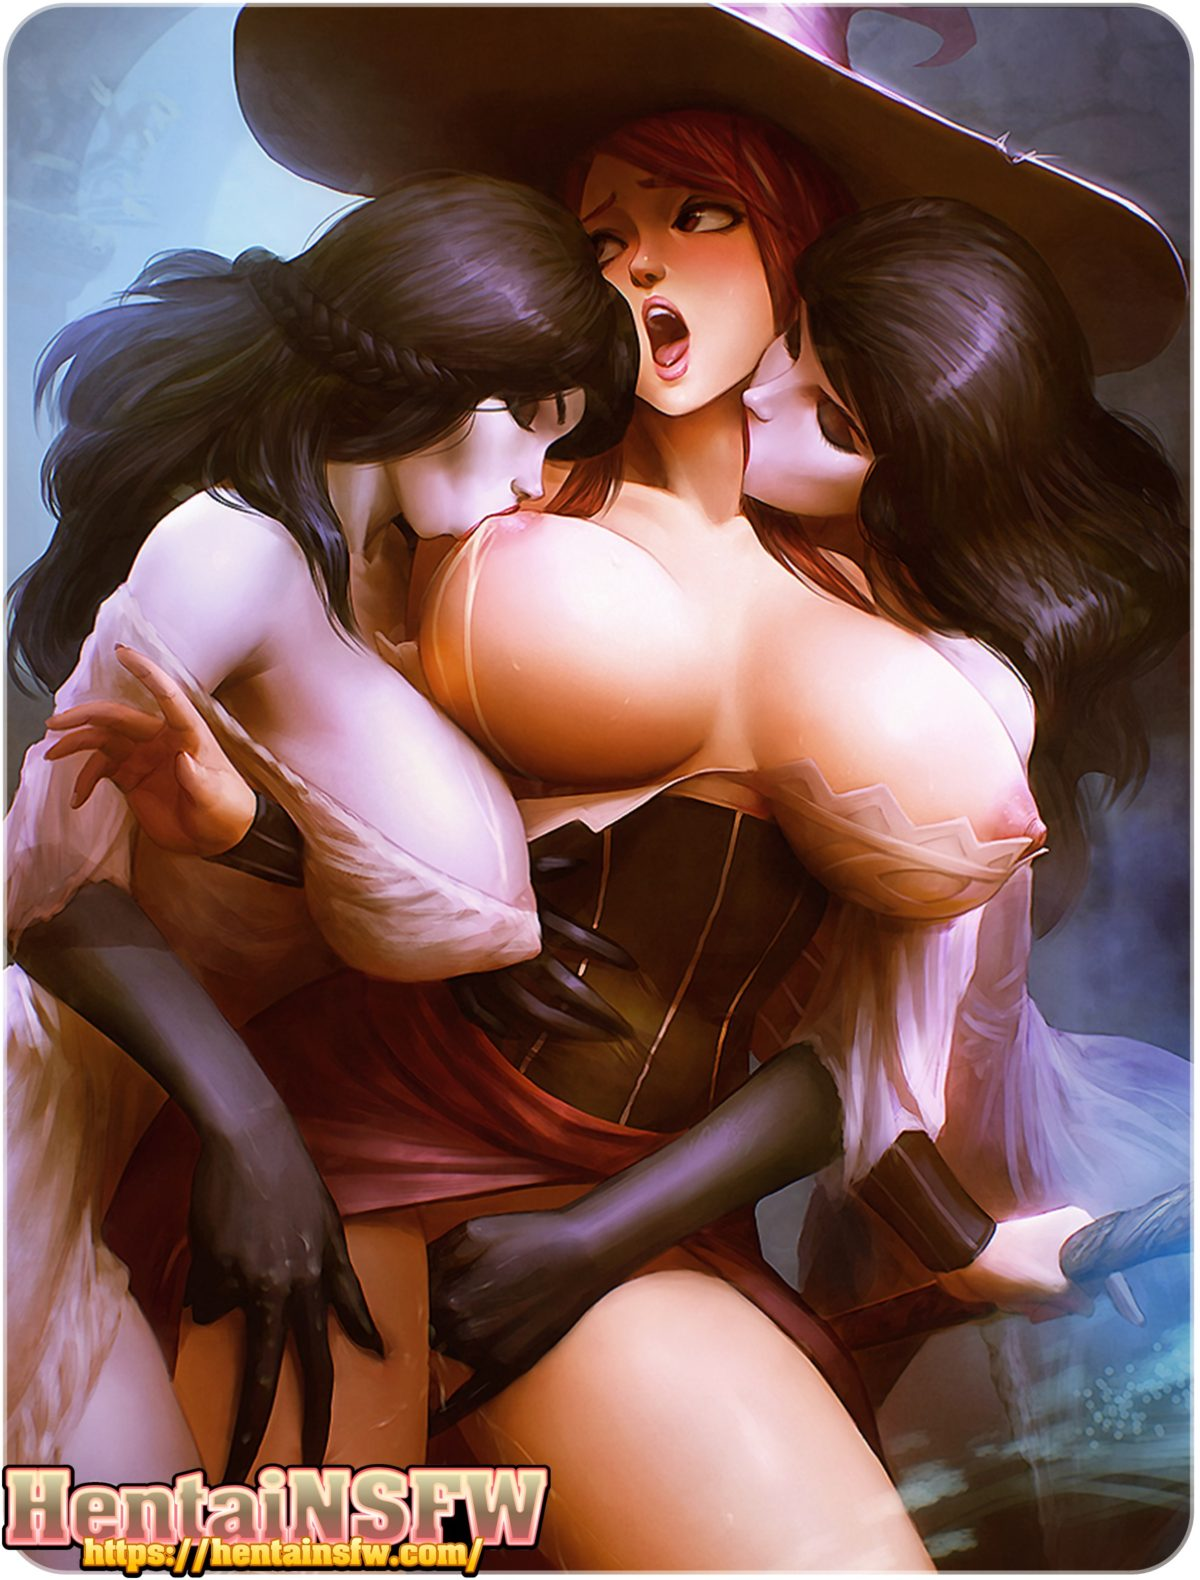 oppai hentai sorceress dragonscrown yuri